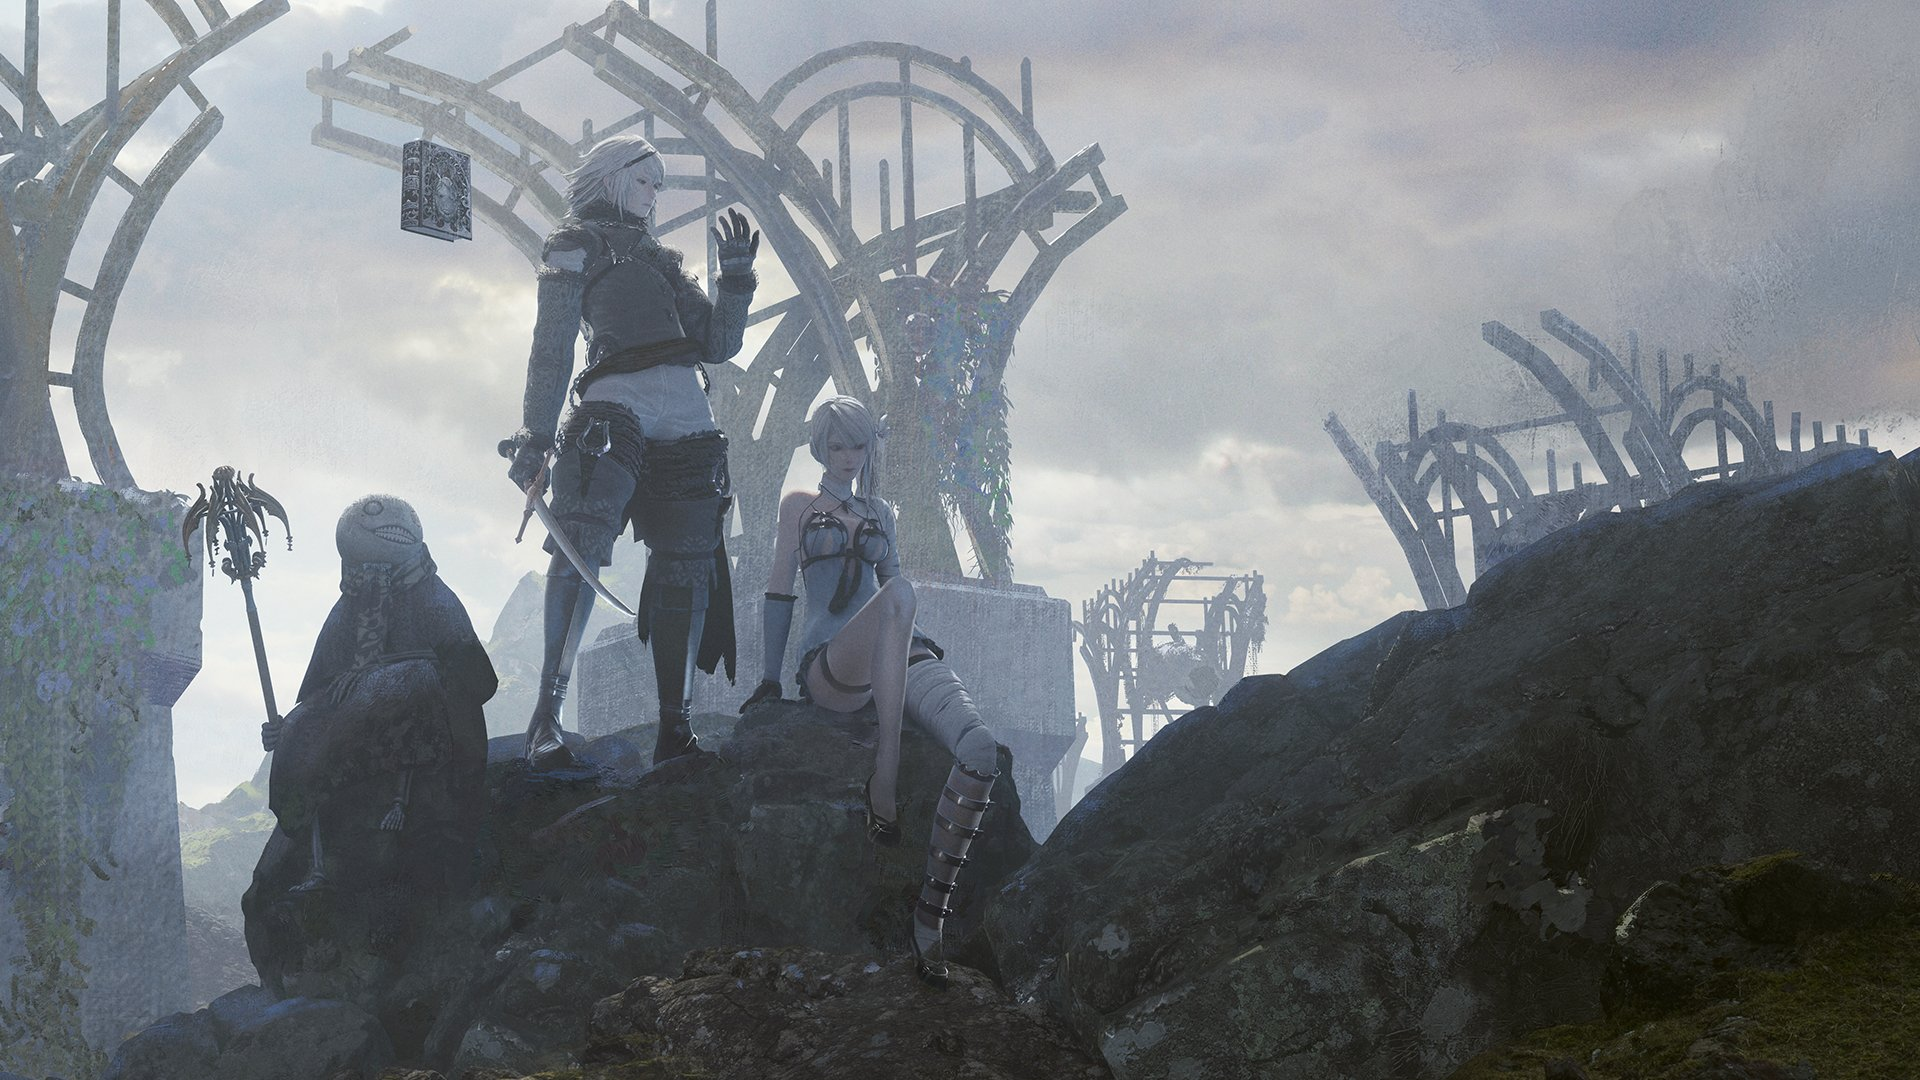 Characters stand in the foreground against a dark and gloomy backdrop in NieR Replicant ver. 1.22474487139.